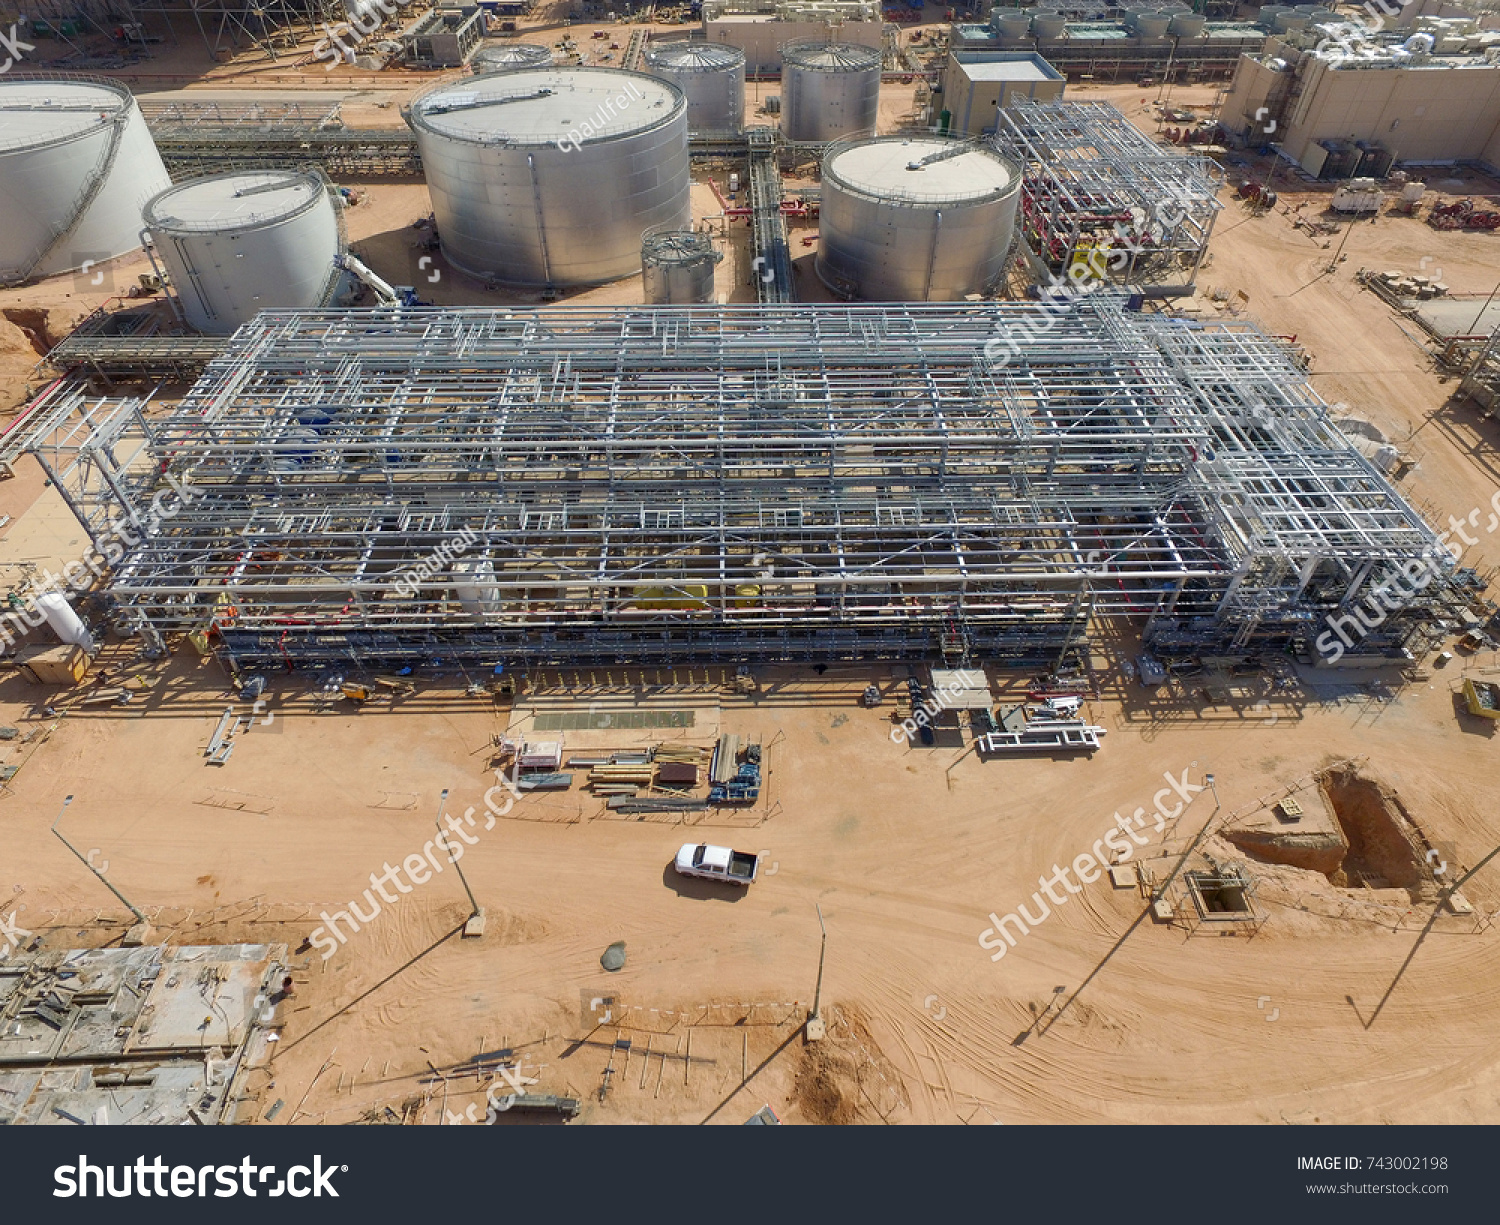 stock-photo-industrial-construction-wate